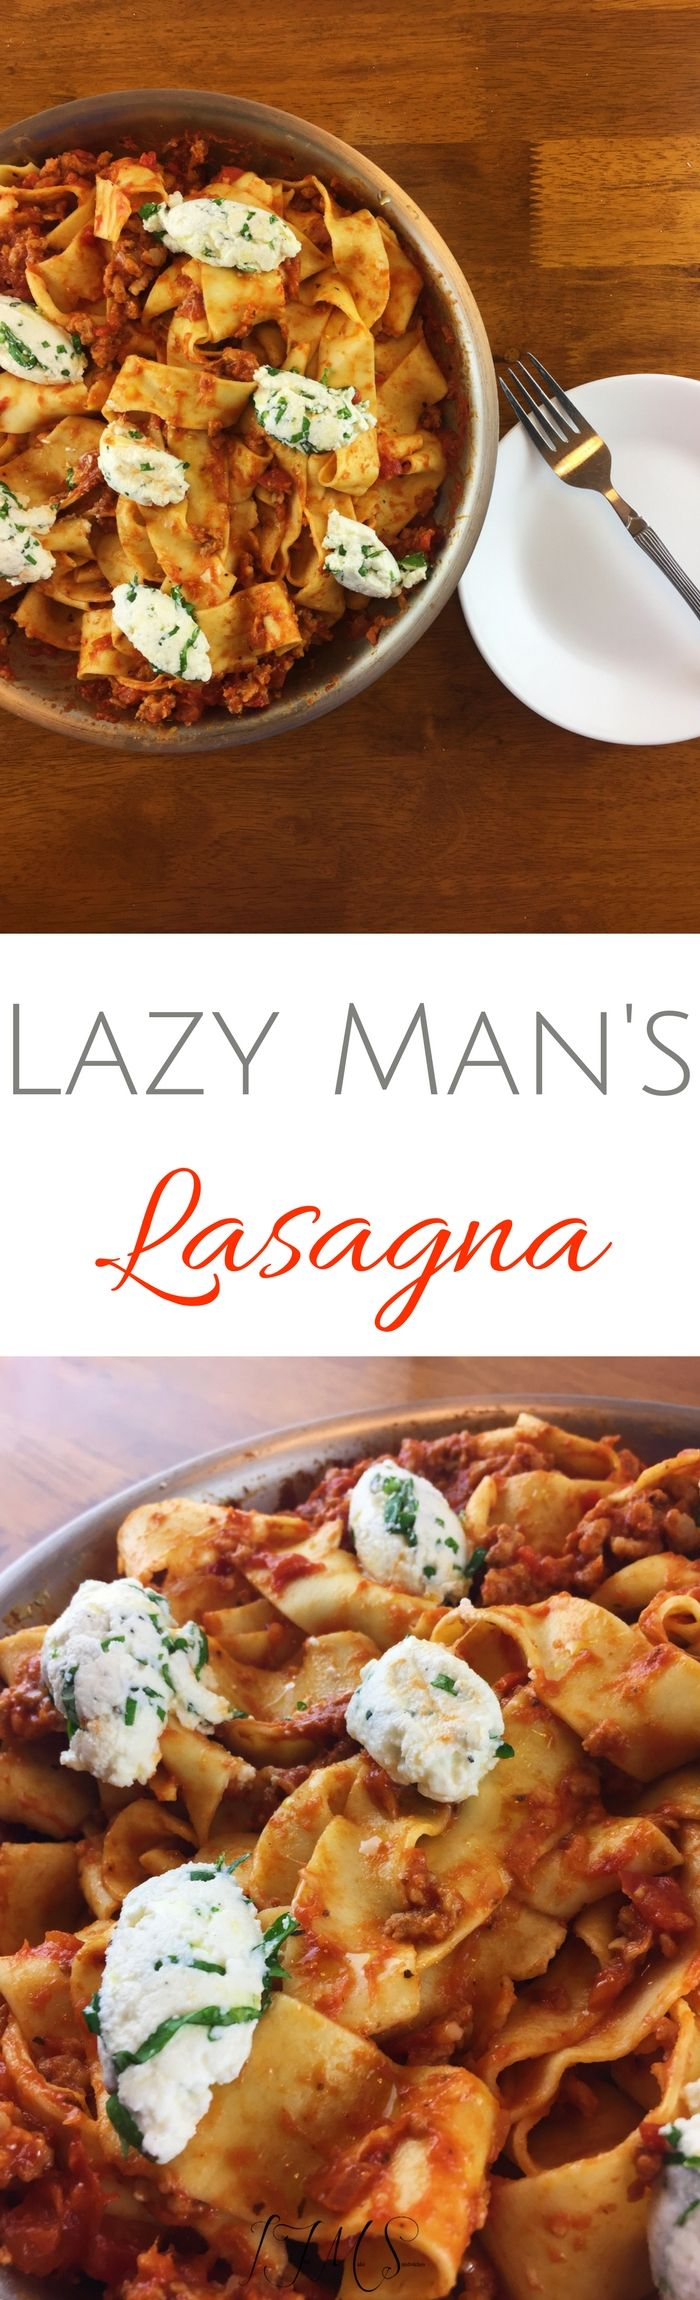 I get that some of you might be in the same plight, so I wanted to offer you an alternative that I love oh so much. Please say hello to Lazy Man's Lasagna